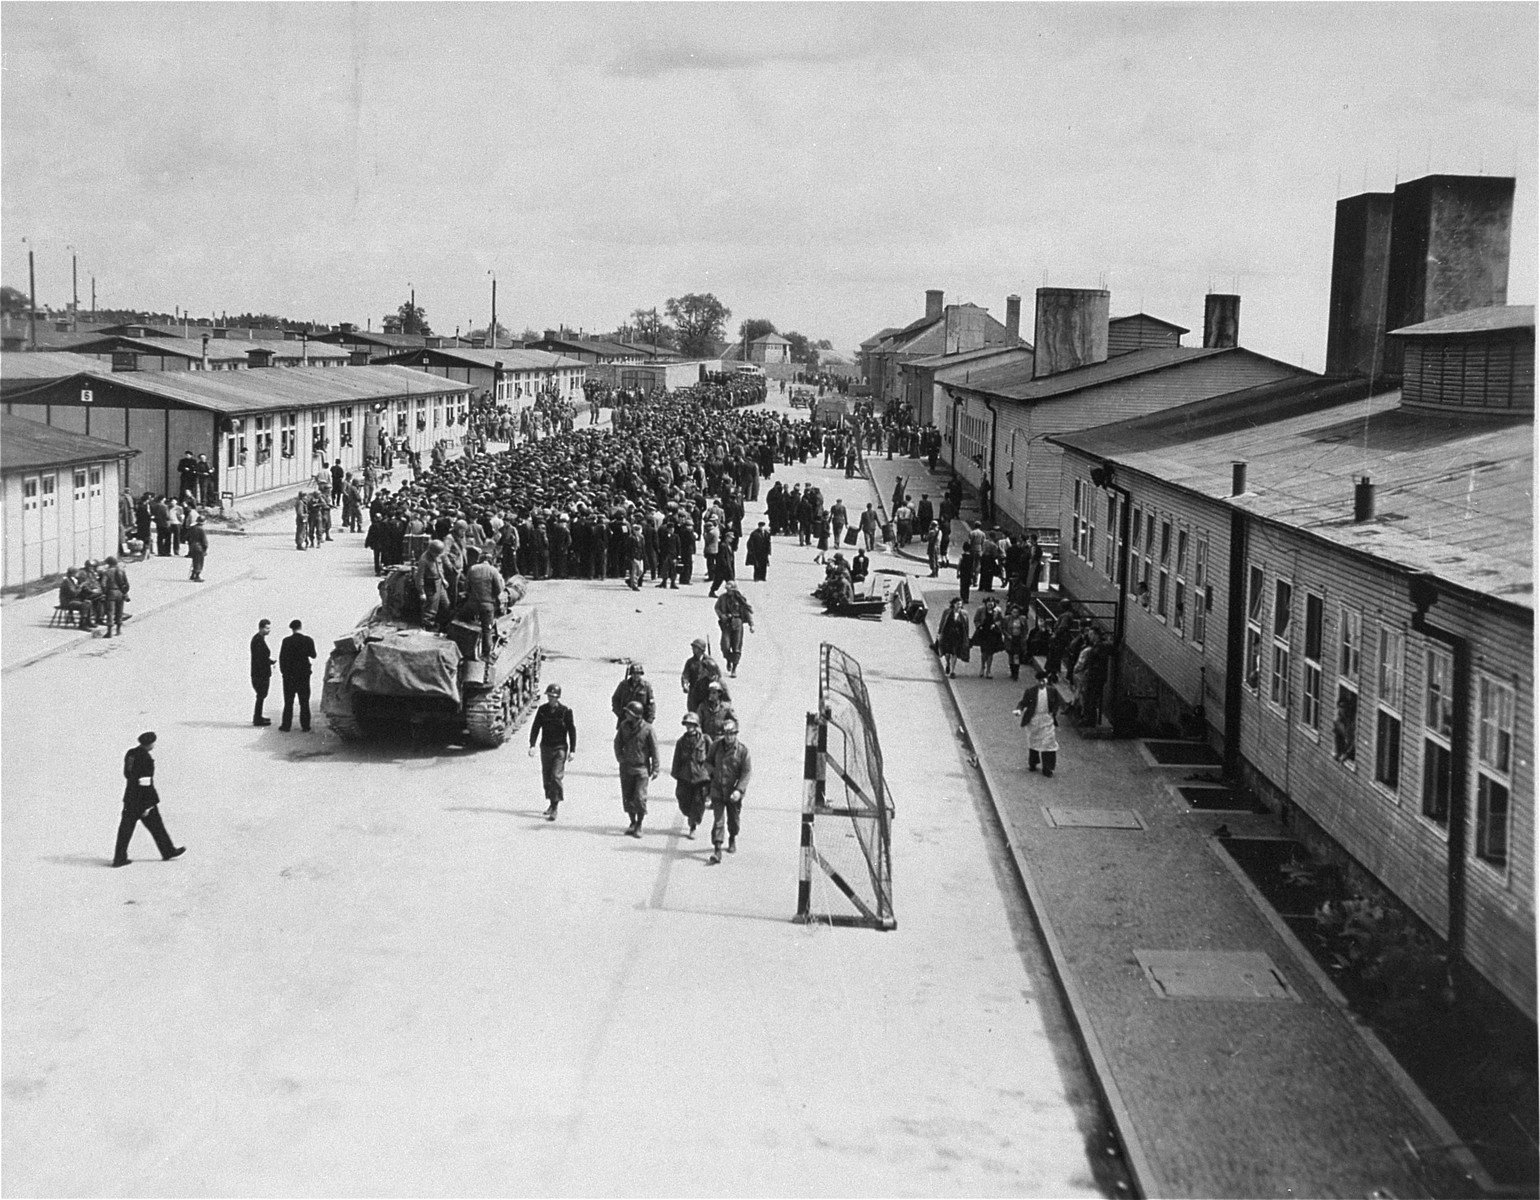 An American tank rolls down the main street of the Mauthausen concentration camp.